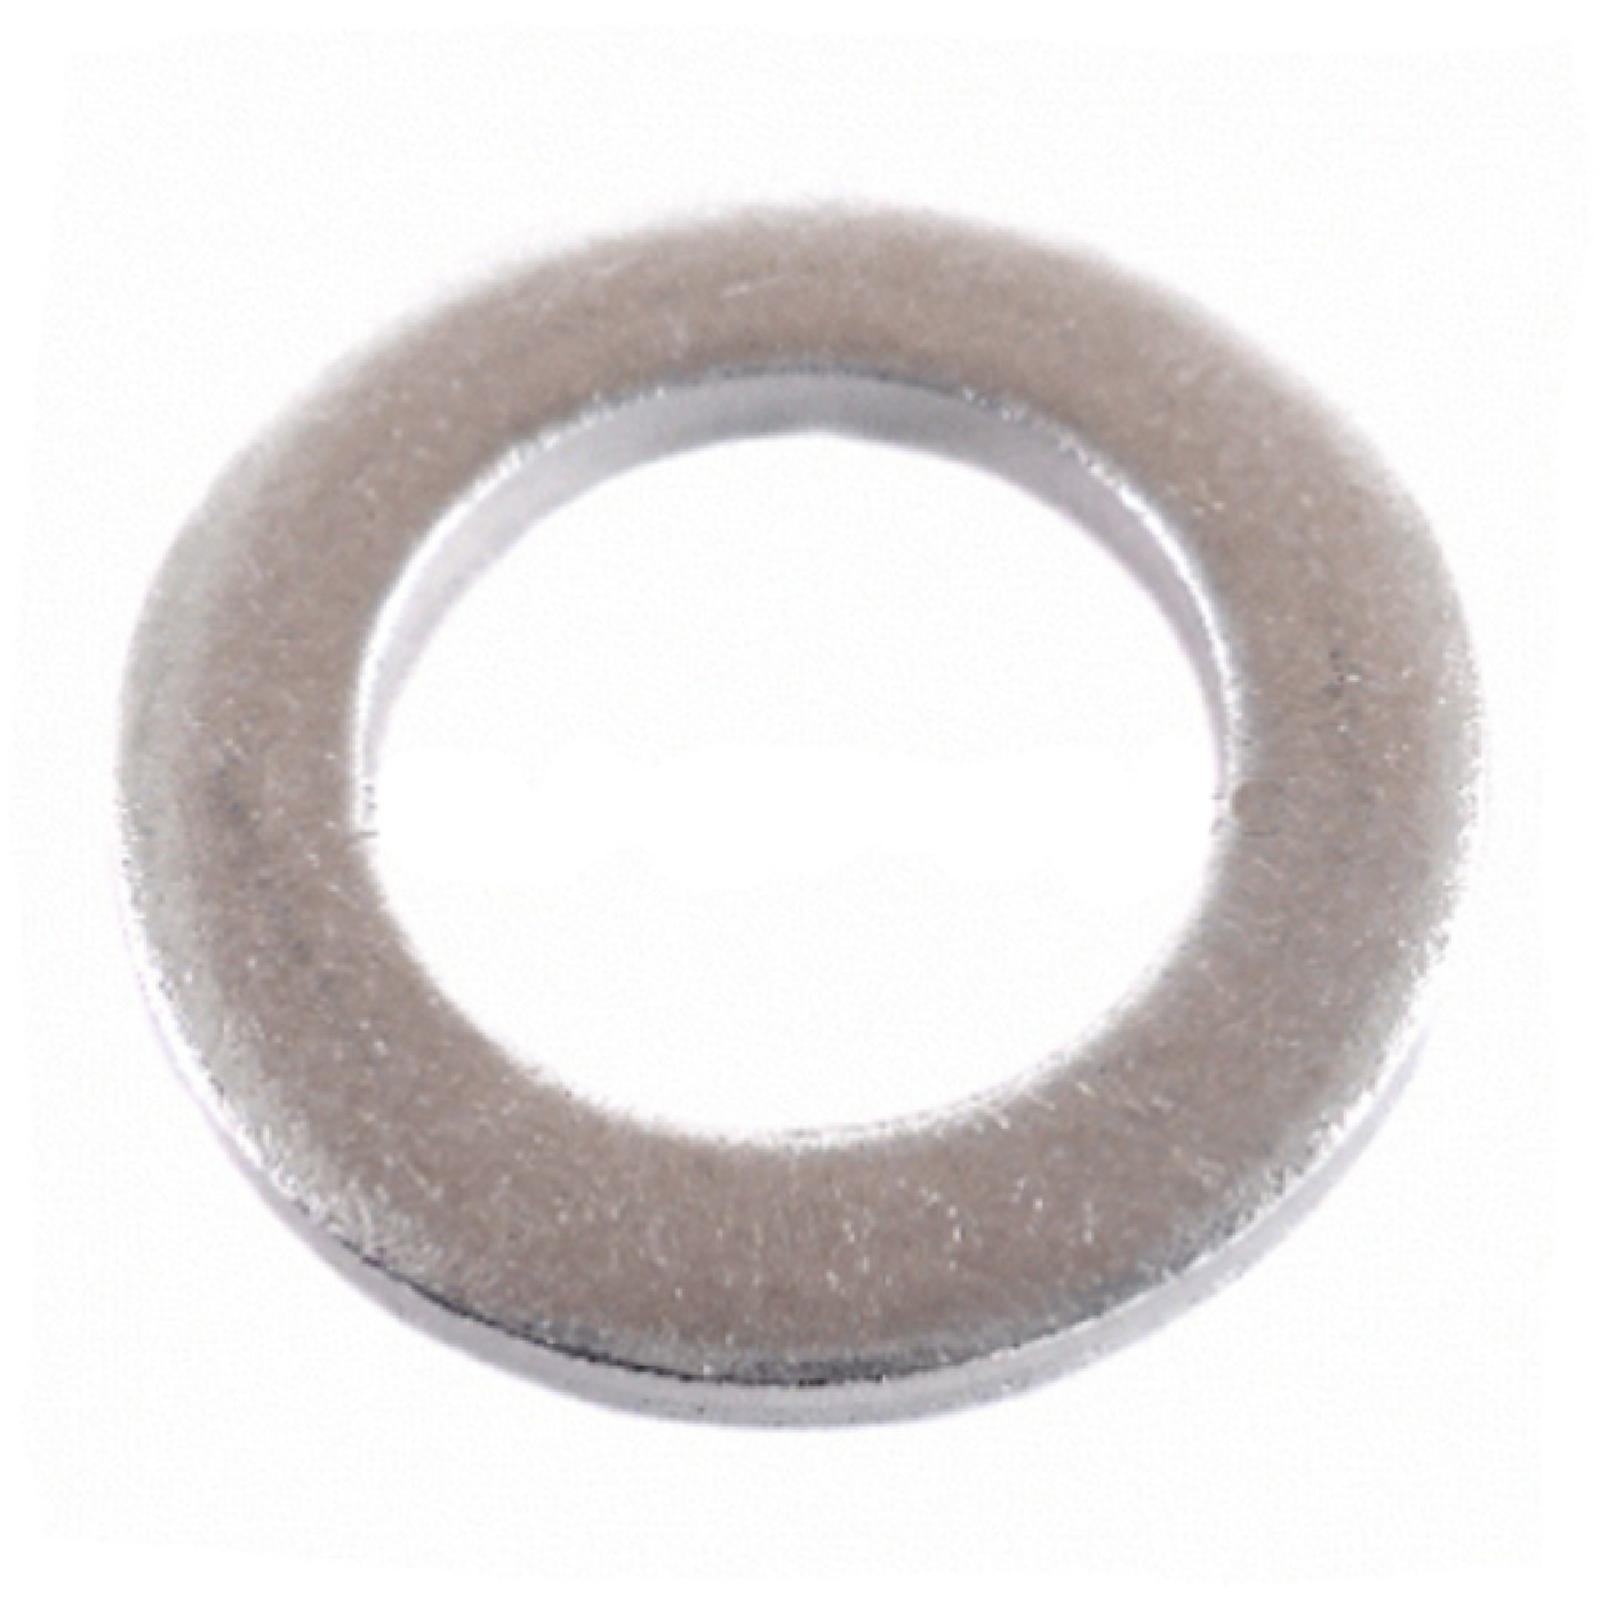 Honda GX240 Drain Plug Washer 12mm